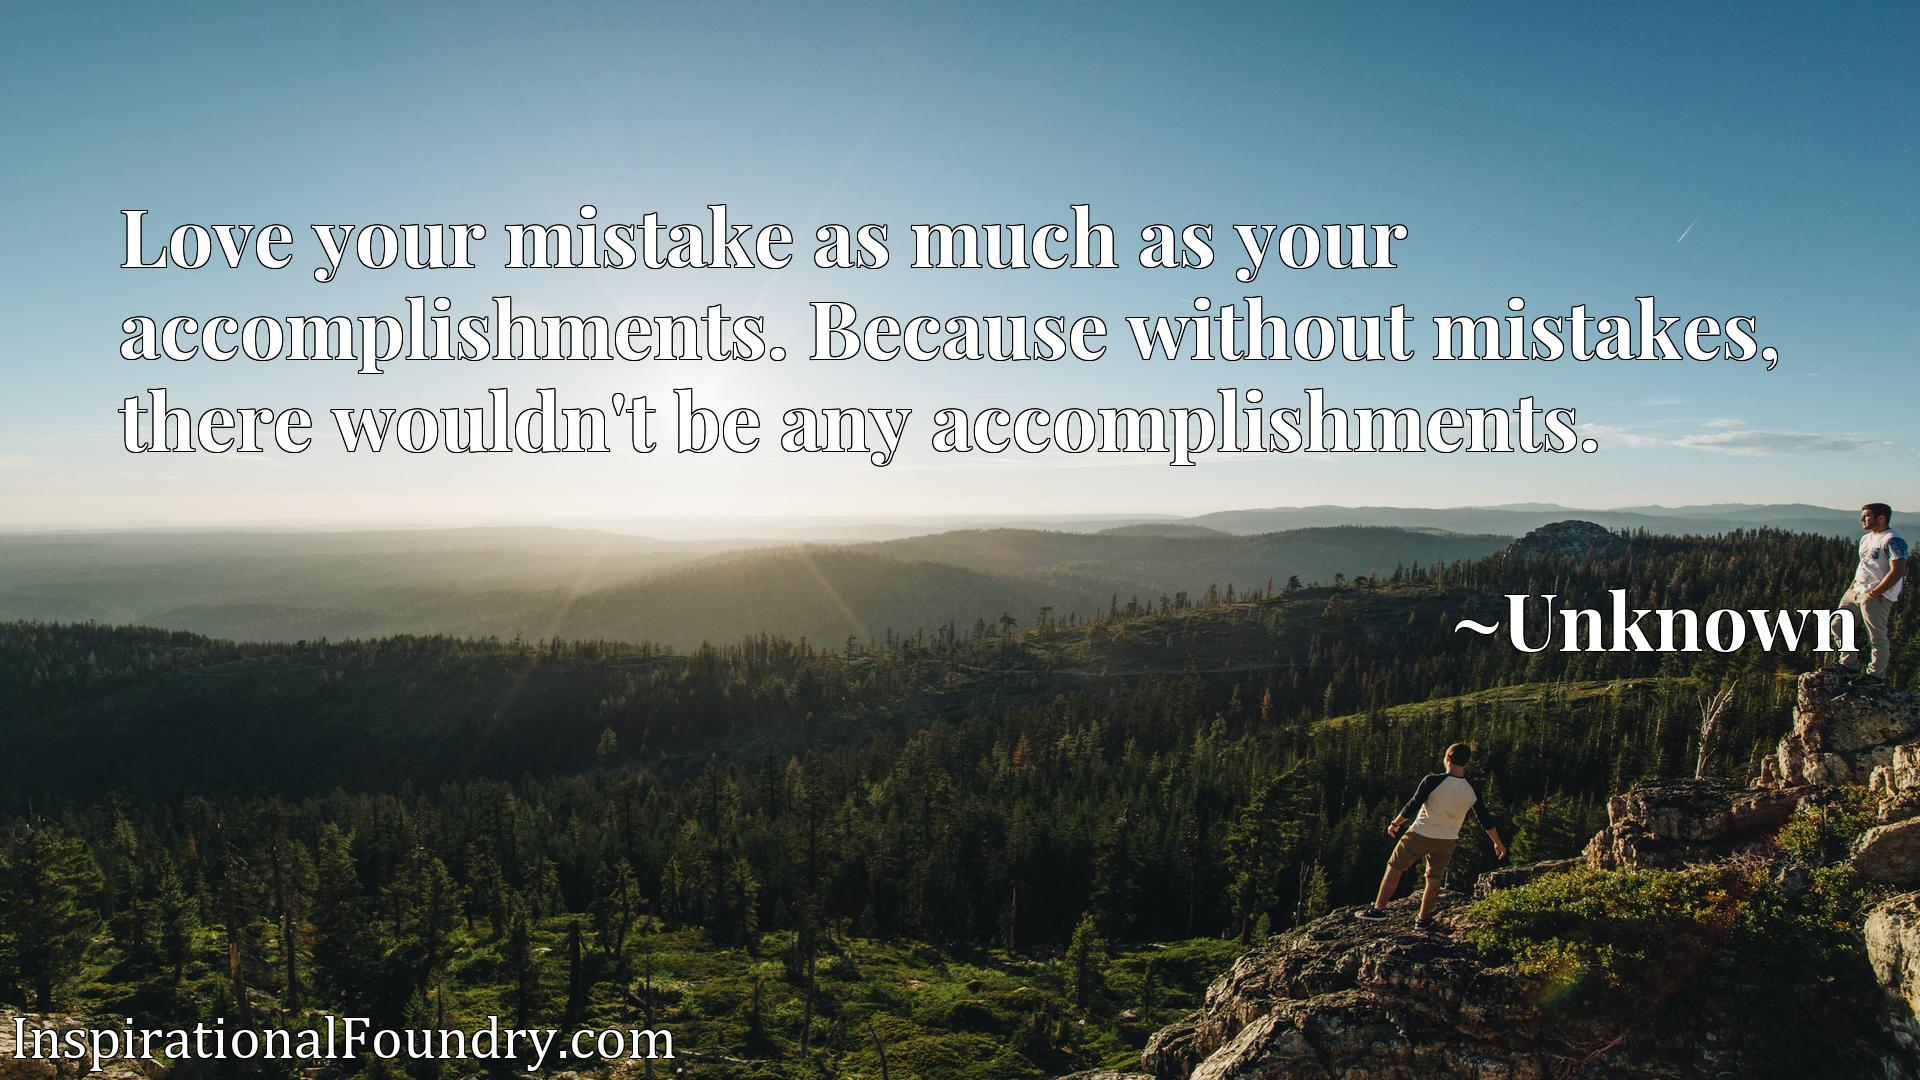 Love your mistake as much as your accomplishments. Because without mistakes, there wouldn't be any accomplishments.